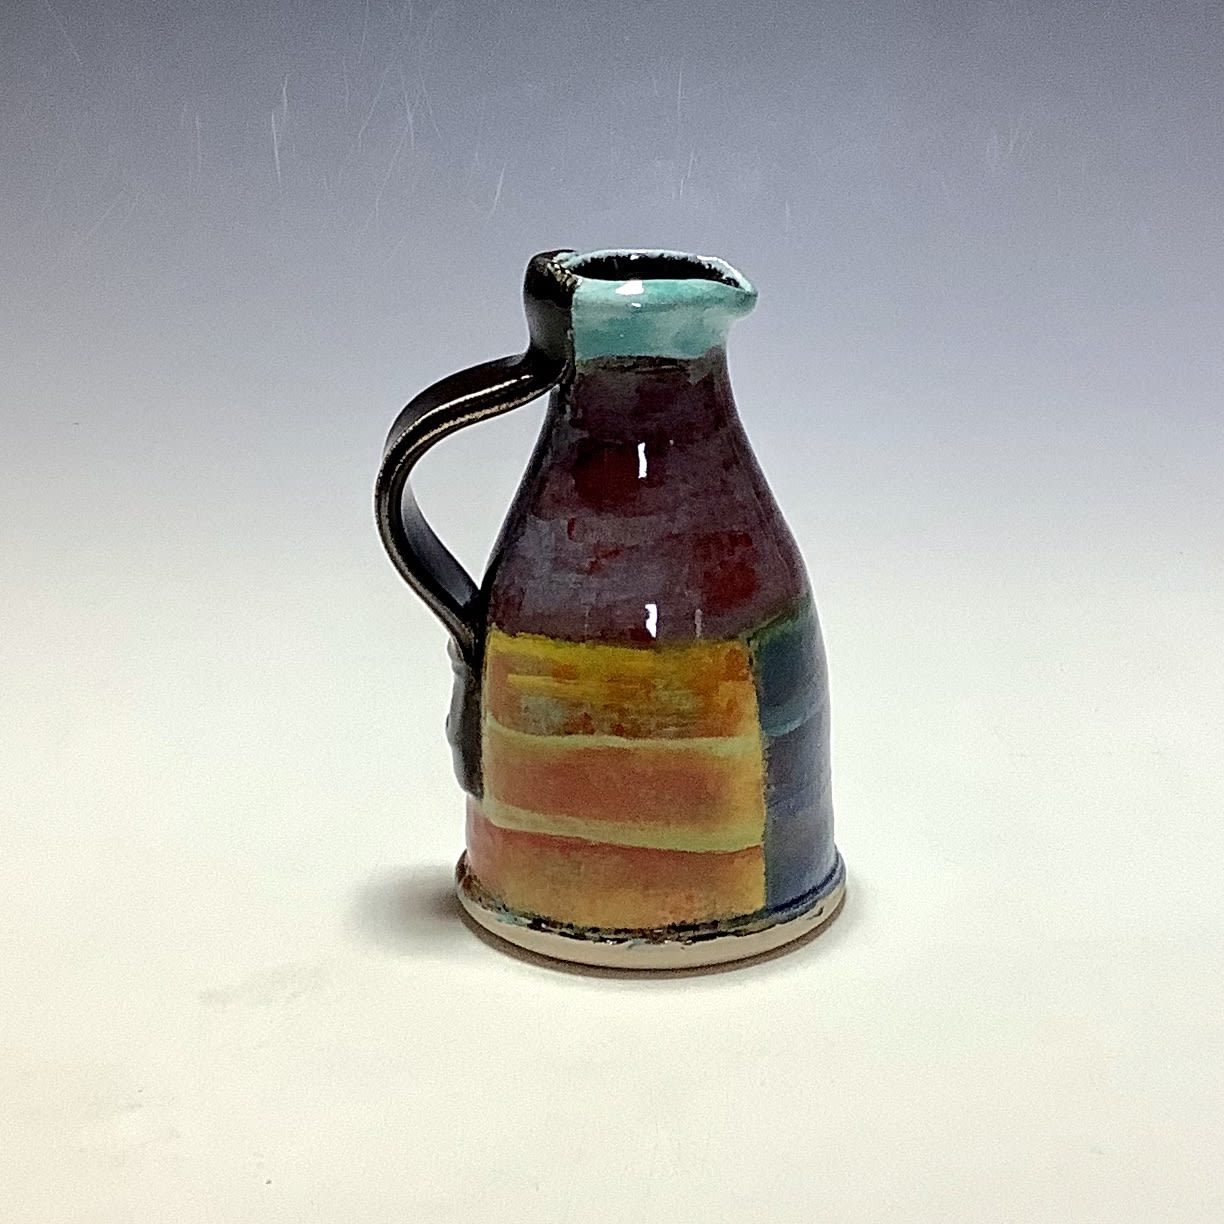 """<span class=""""link fancybox-details-link""""><a href=""""/artists/100-john-pollex/works/7843-john-pollex-small-jug-2021/"""">View Detail Page</a></span><div class=""""artist""""><strong>John Pollex</strong></div> <div class=""""title""""><em>Small Jug</em>, 2021</div> <div class=""""signed_and_dated"""">impressed with the artist's seal mark 'JP'</div> <div class=""""medium"""">white earthenware decorated with coloured slips</div> <div class=""""dimensions"""">height. 11 cm x diameter. 6.5 cm</div><div class=""""price"""">£66.00</div><div class=""""copyright_line"""">Own Art: £6.60 x 10 Months, 0% APR</div>"""